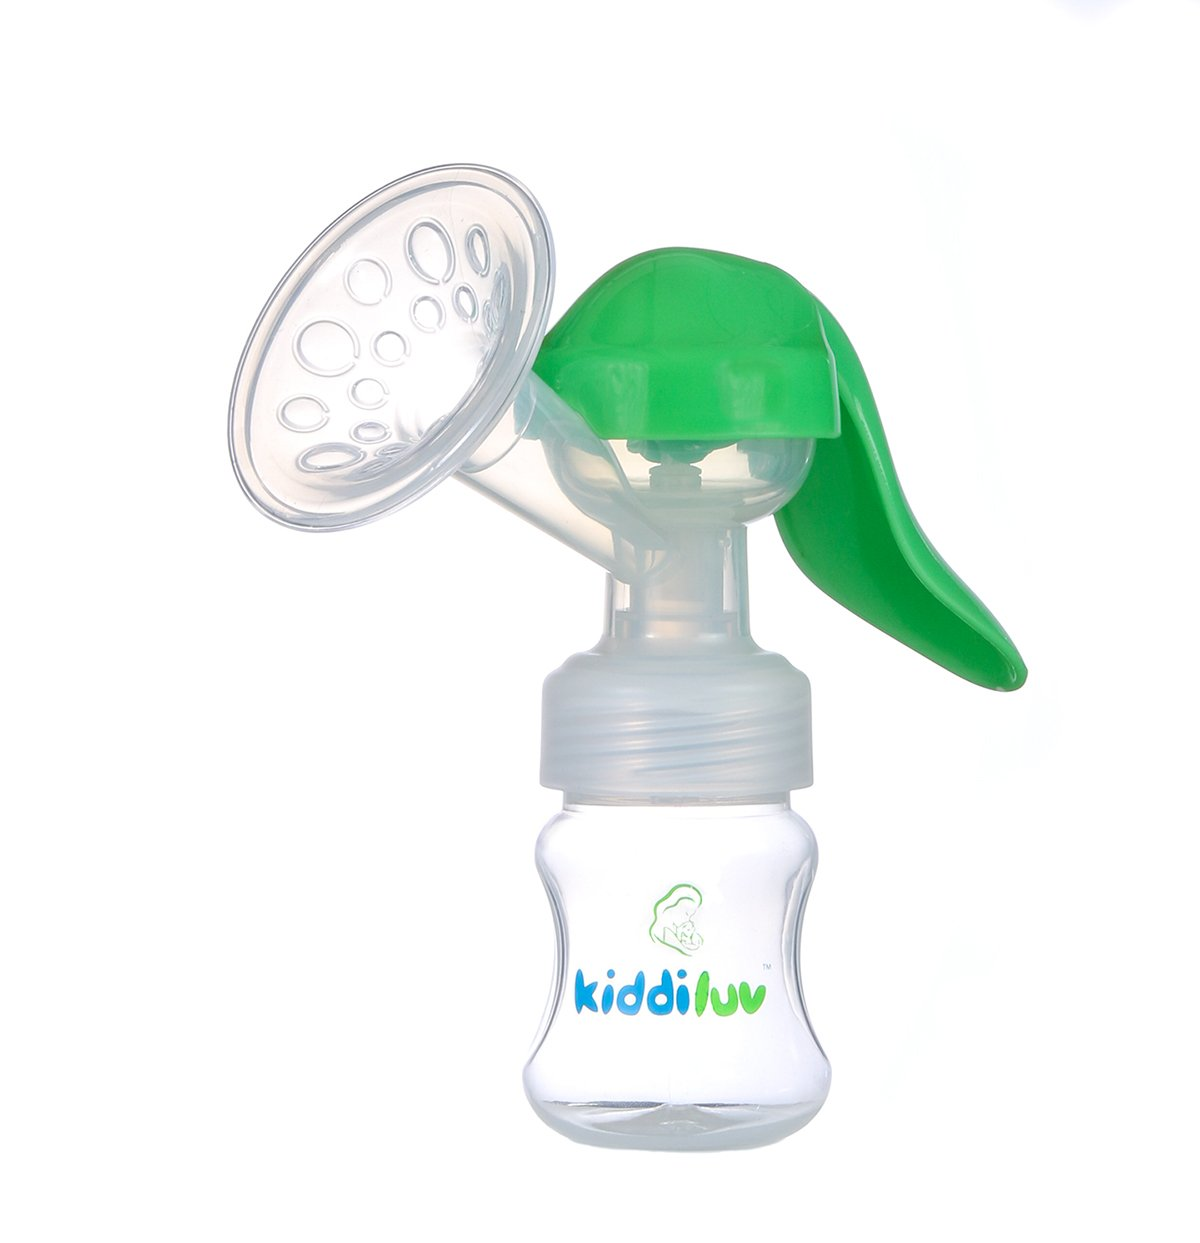 Kiddiluv Manual Breast Pump with Baby Bottle (Single) Portable, Travel Friendly, Handheld Breastfeeding Kit | Hypoallergenic Soft Silicone Breast Shield | Gentle, Efficient Suction by Kiddiluv